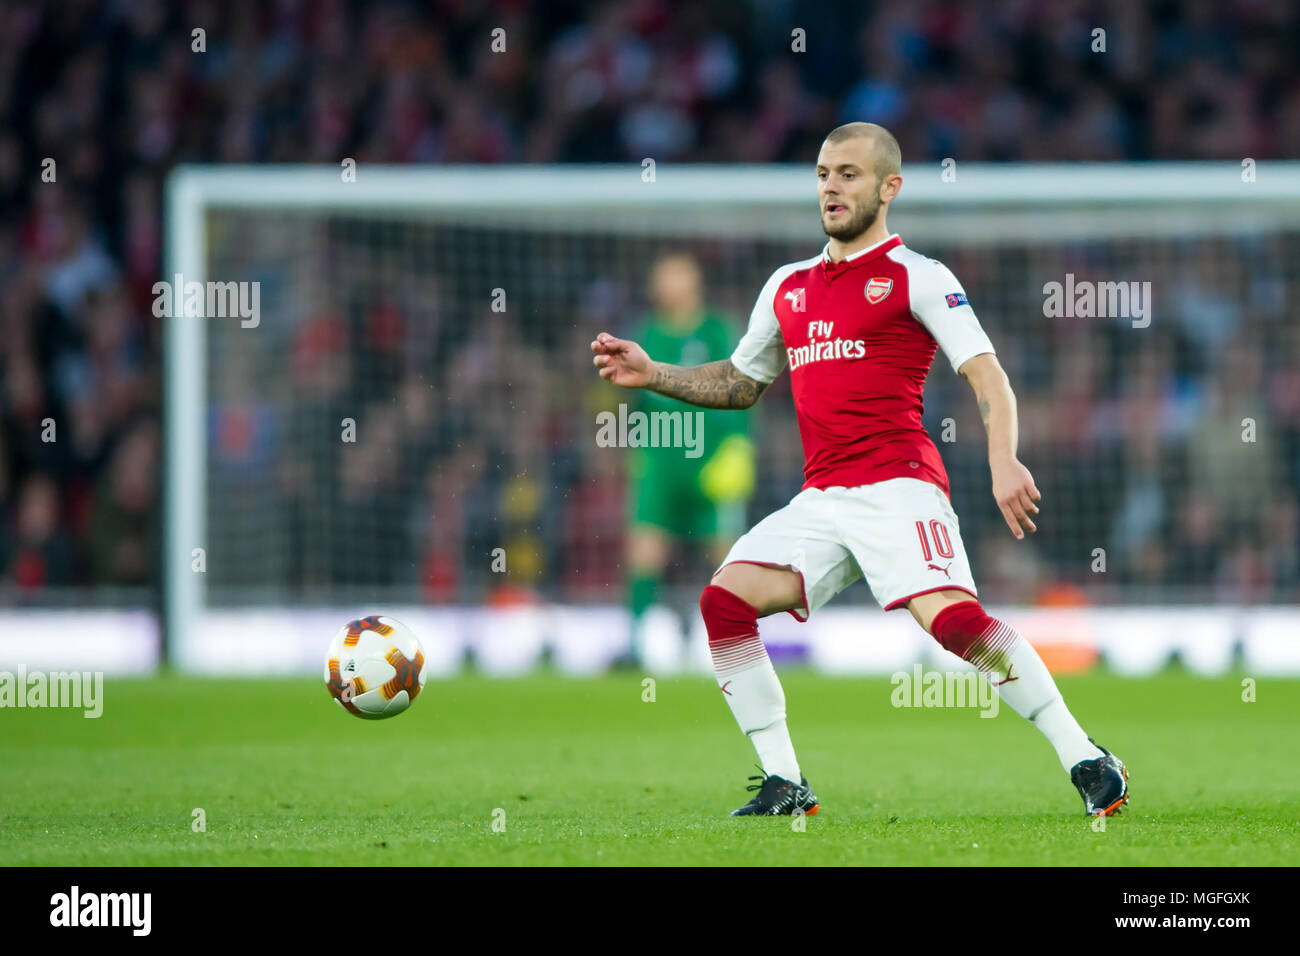 London, UK, 26 April 2018. Jack Wilshere of Arsenal during the UEFA Europa League Semi Final match between Arsenal and Atletico Madrid at the Emirates Stadium, London, England on 26 April 2018. Credit: THX Images/Alamy Live News - Stock Image